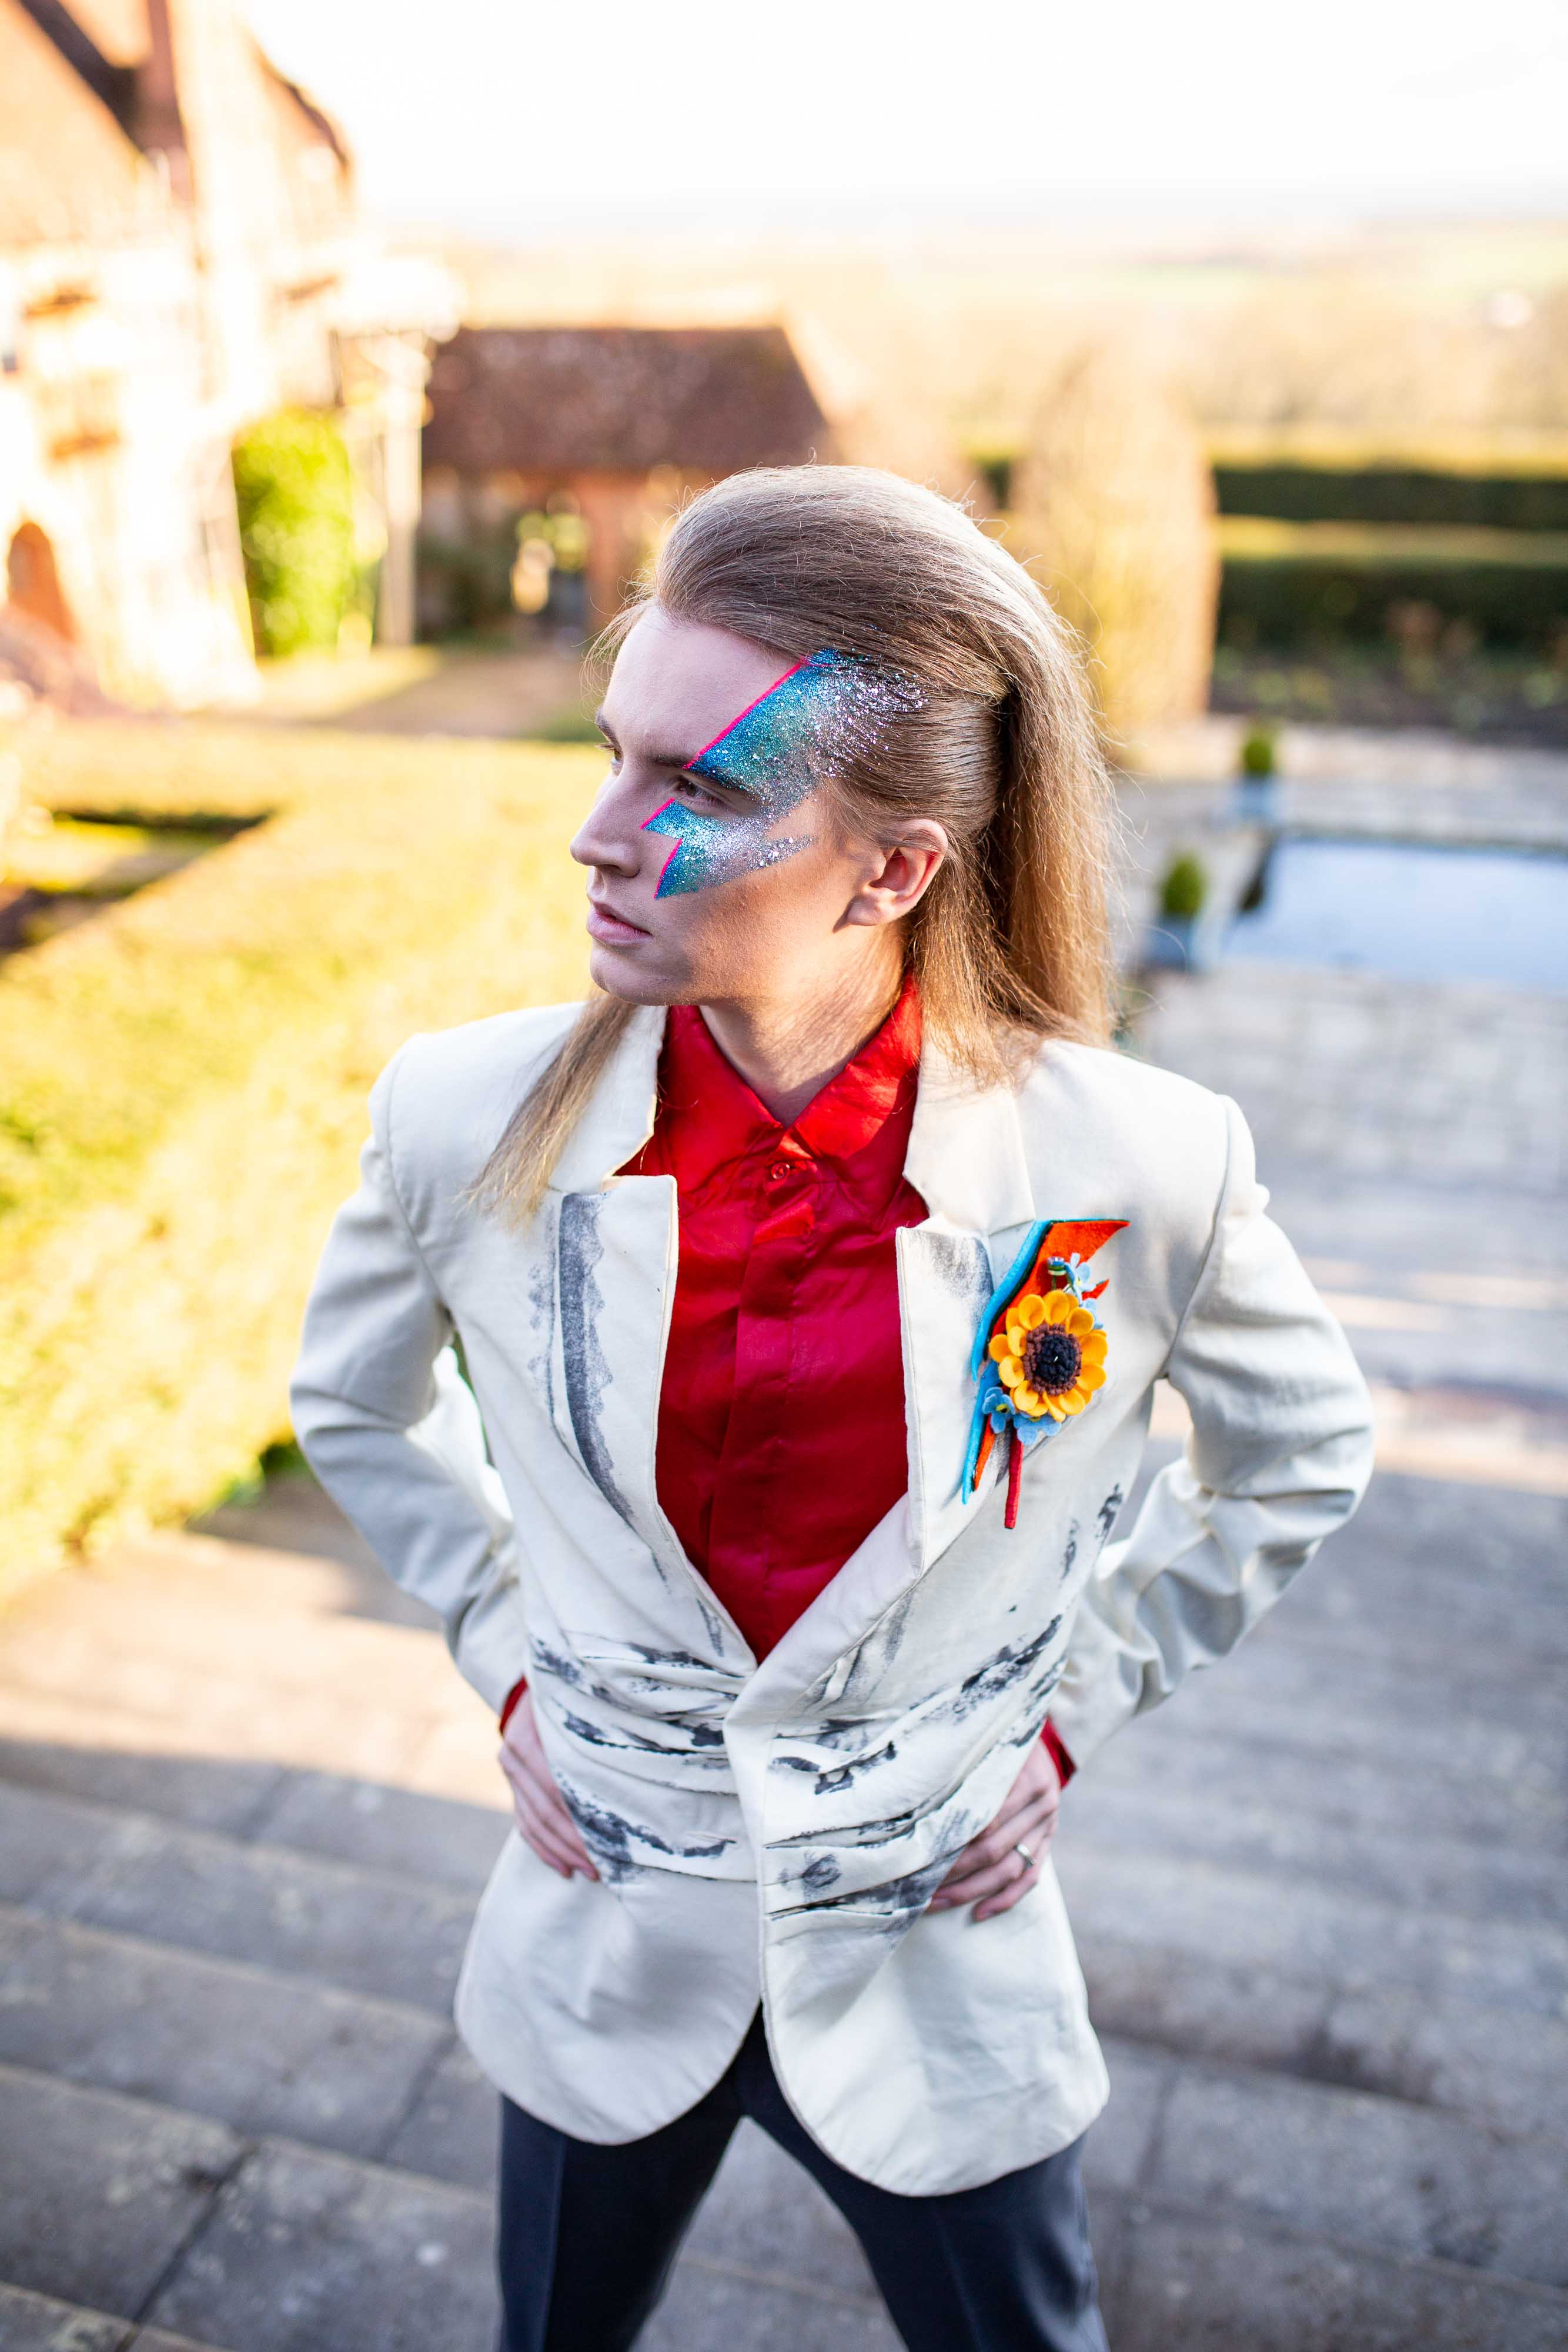 wedding menswear- alternative groomswear- music themed wedding- bake to the future- florence berry photography- davie bowie suit- eccentric wedding- starman wedding- davie bowie wedding